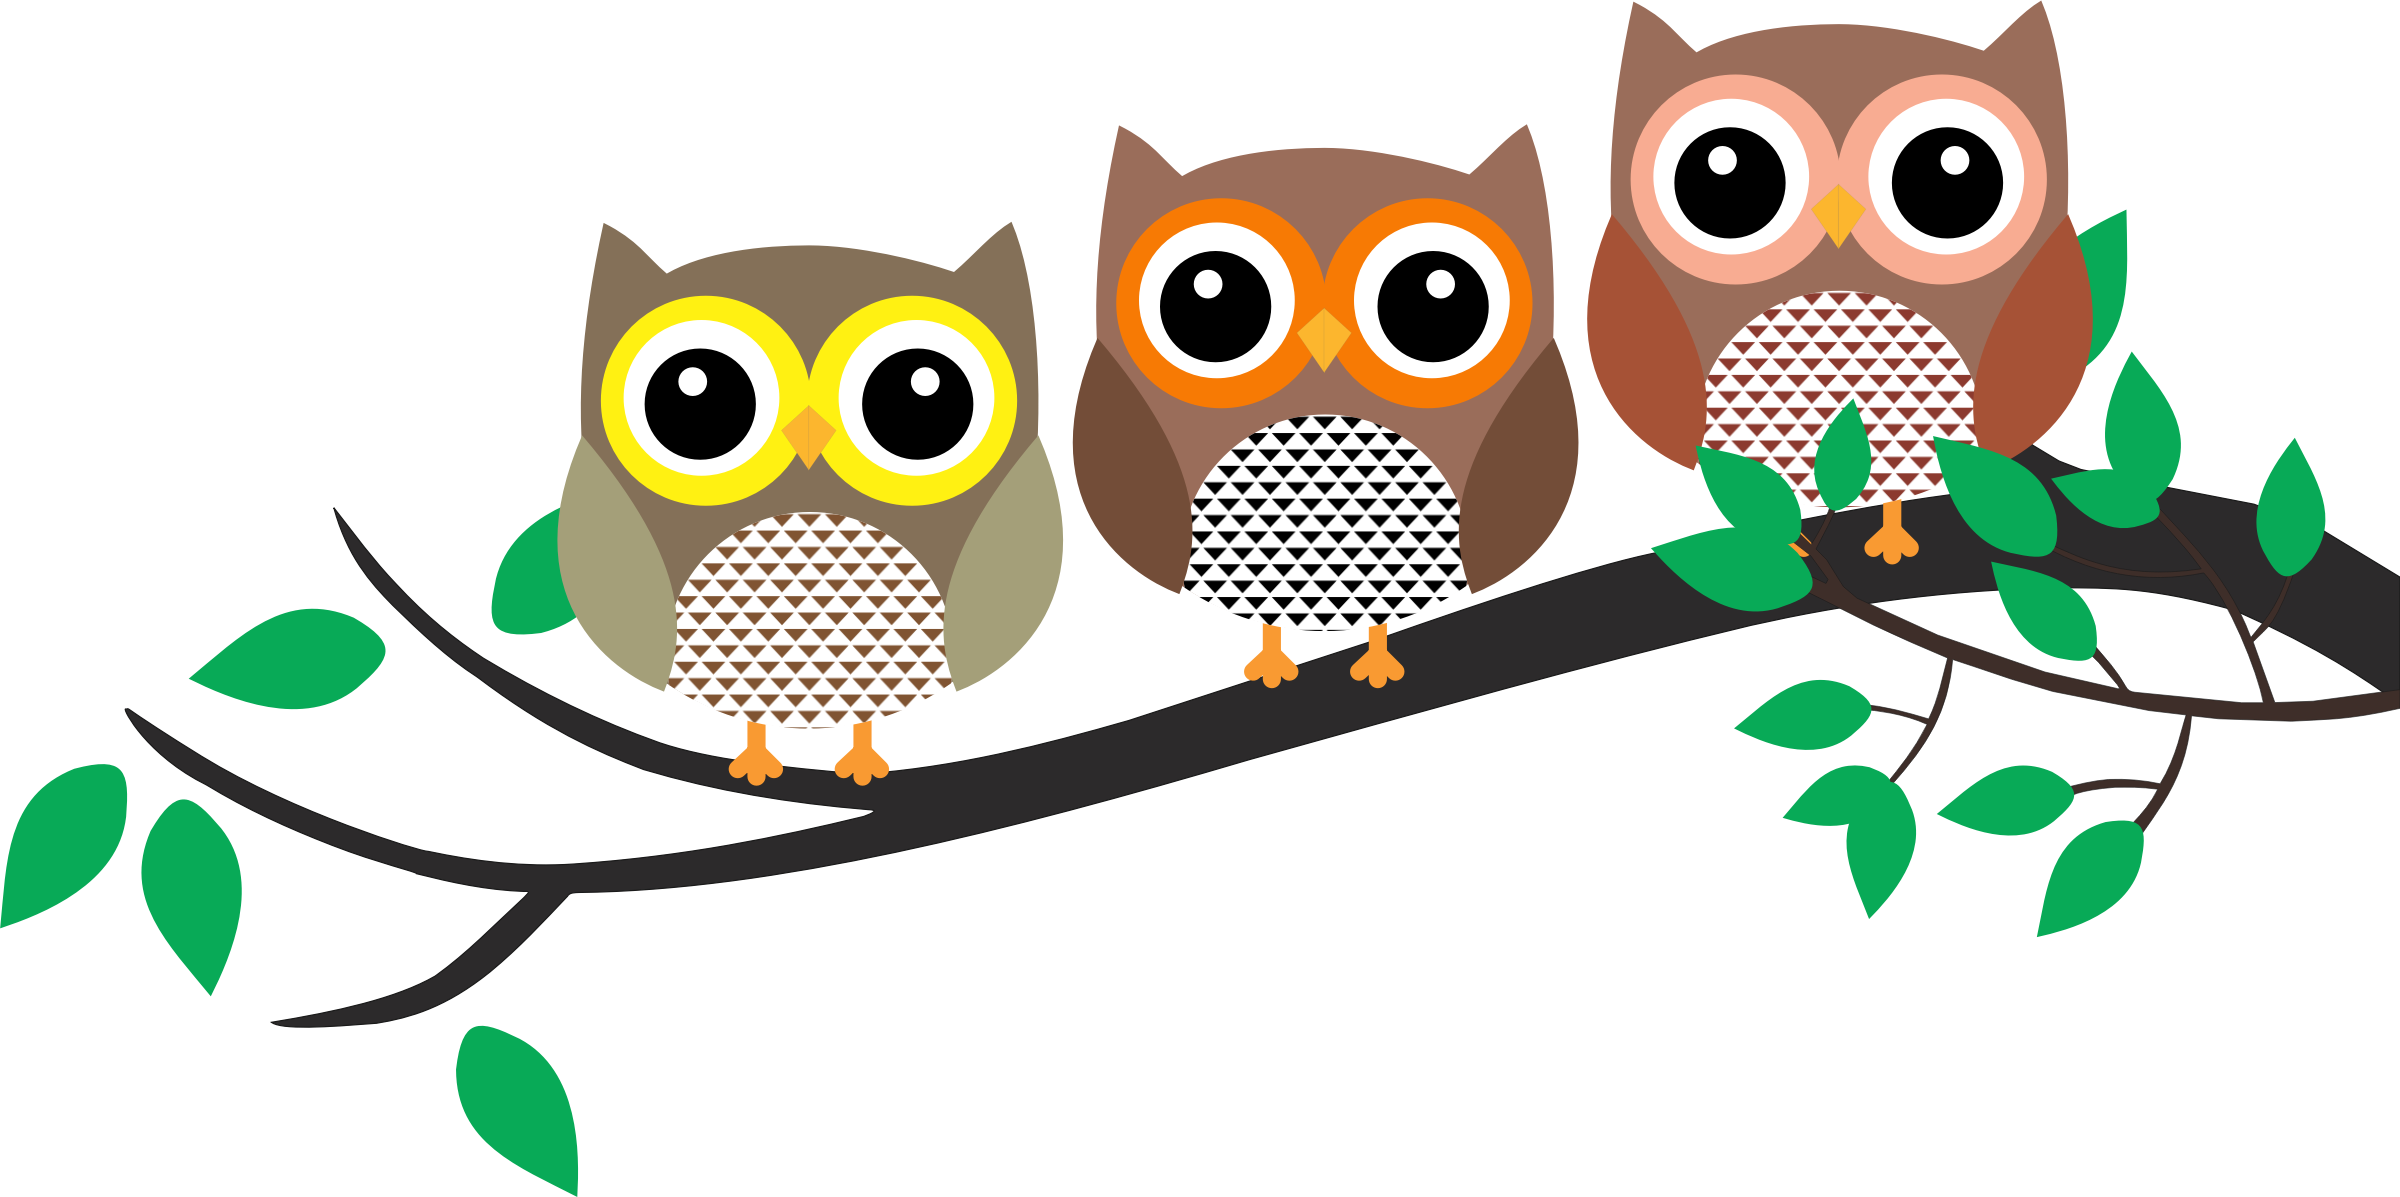 Owls clipart couple. Three in a tree